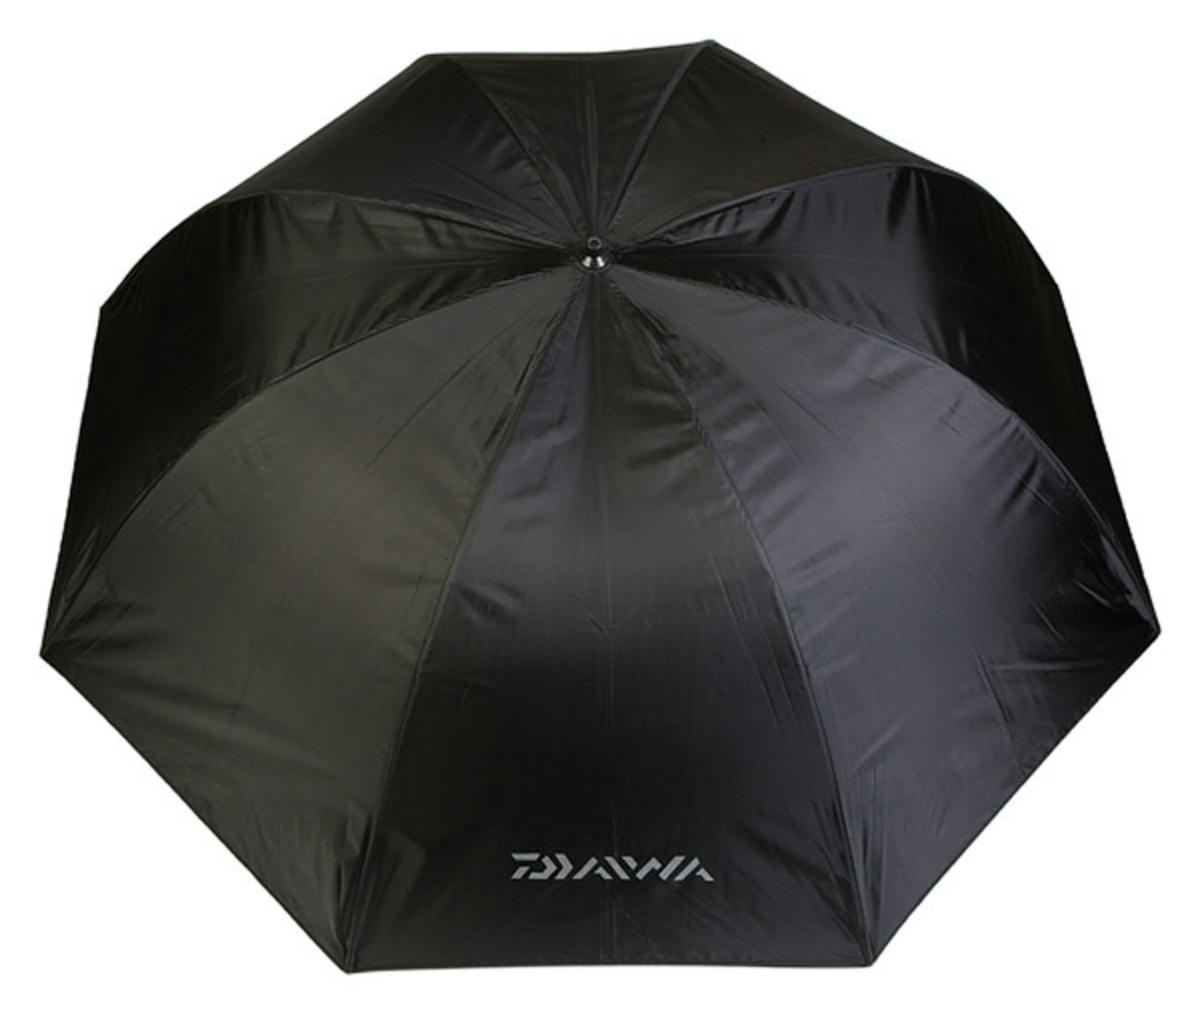 NEW DAIWA VECTOR 125CM 50' FISHING BROLLY / UMBRELLA BLACK DVB125-B